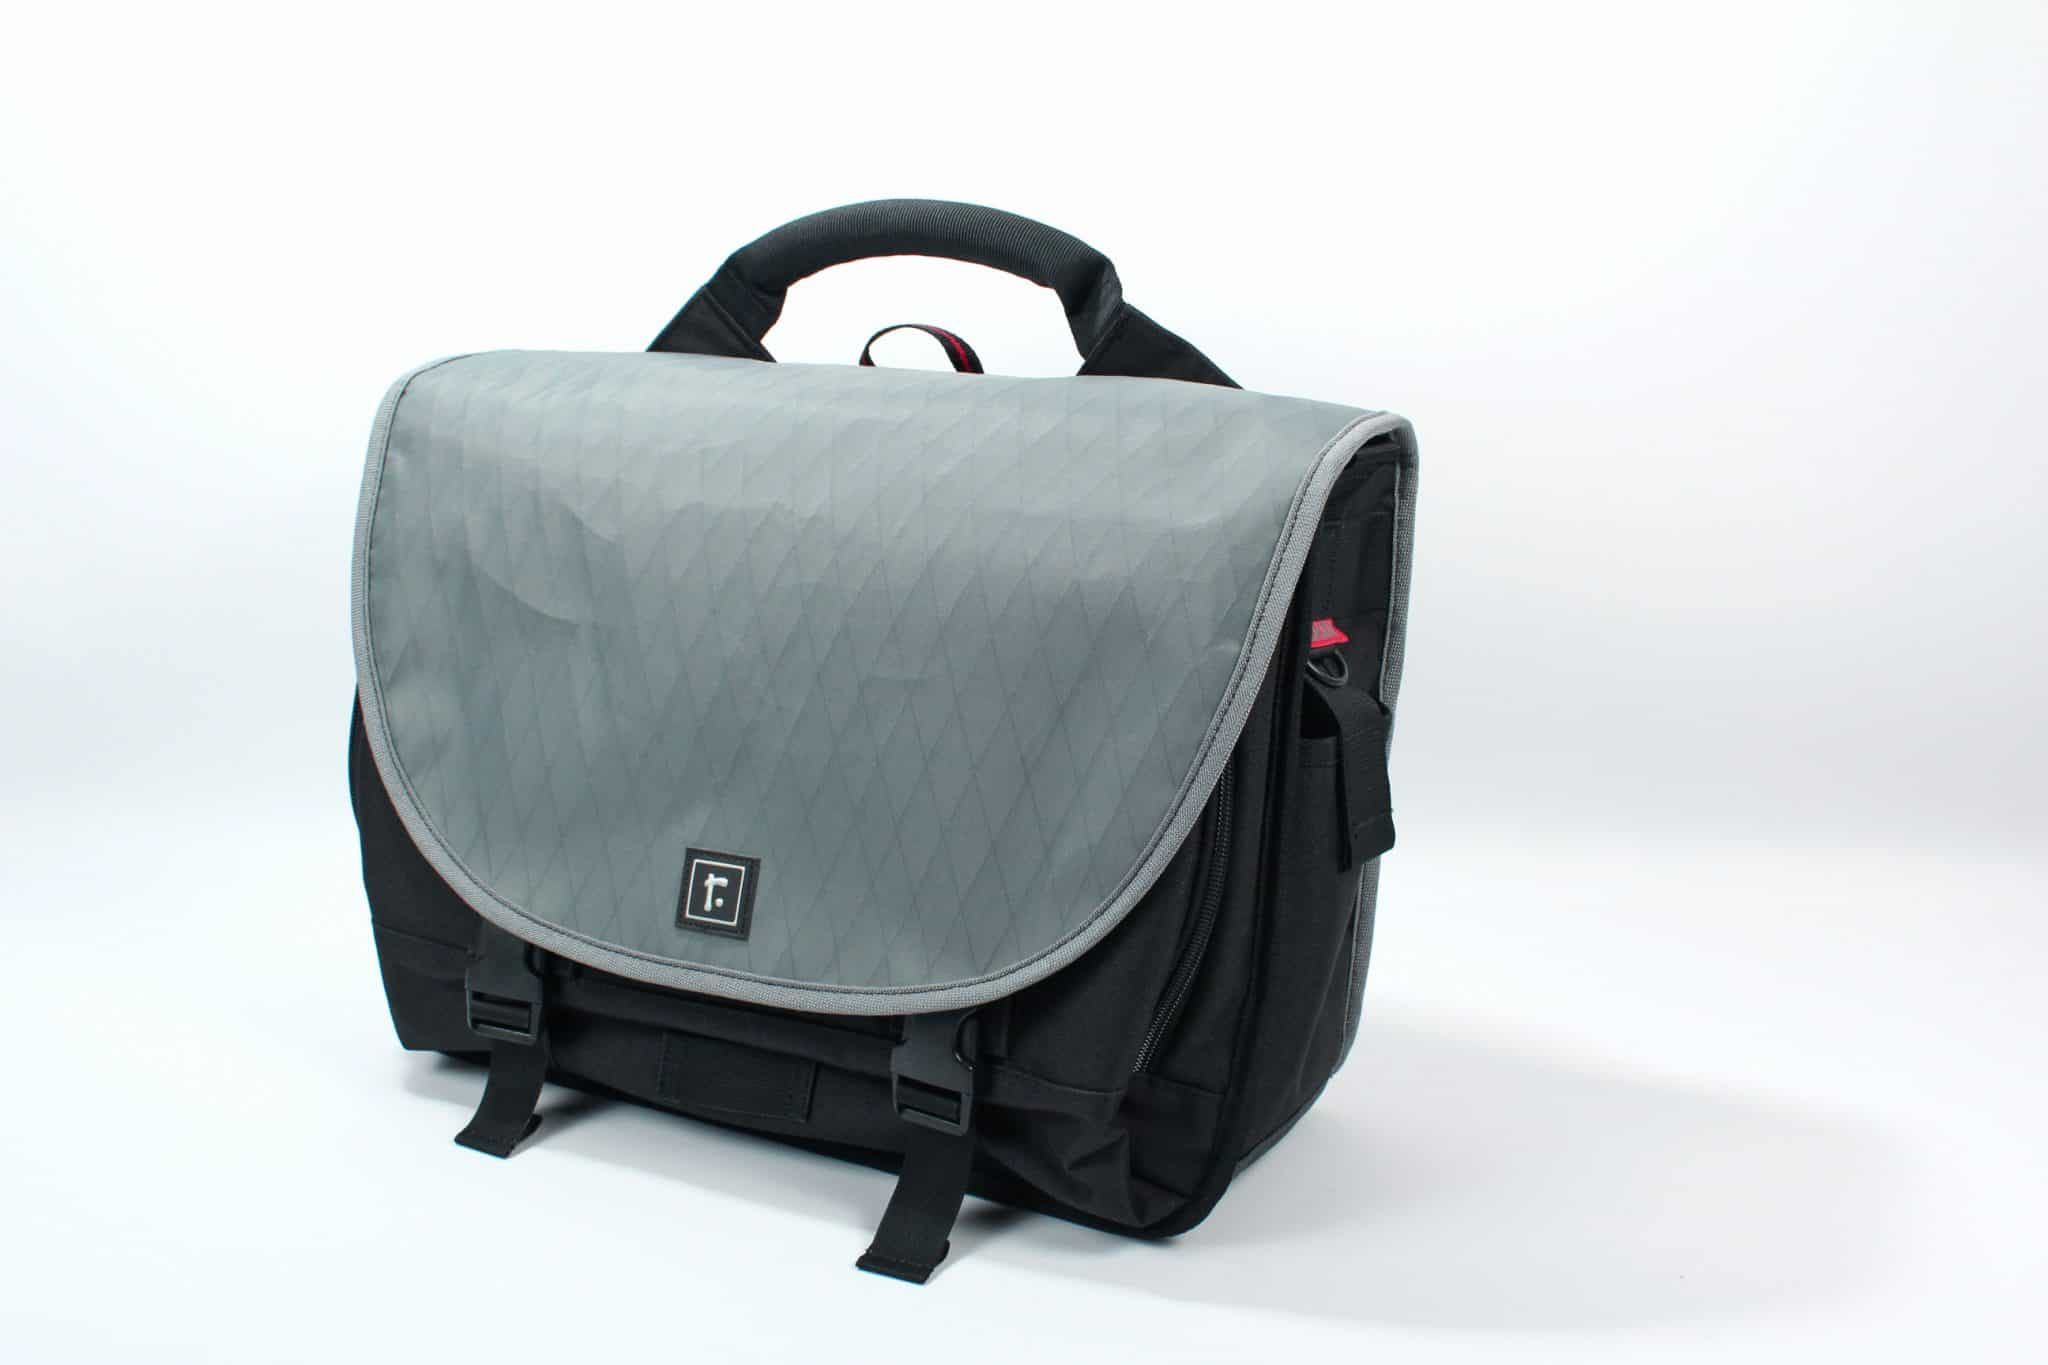 Save up to 50% with these current Rickshaw Bagworks coupons for November The latest giveback.cf coupon codes at CouponFollow. About: